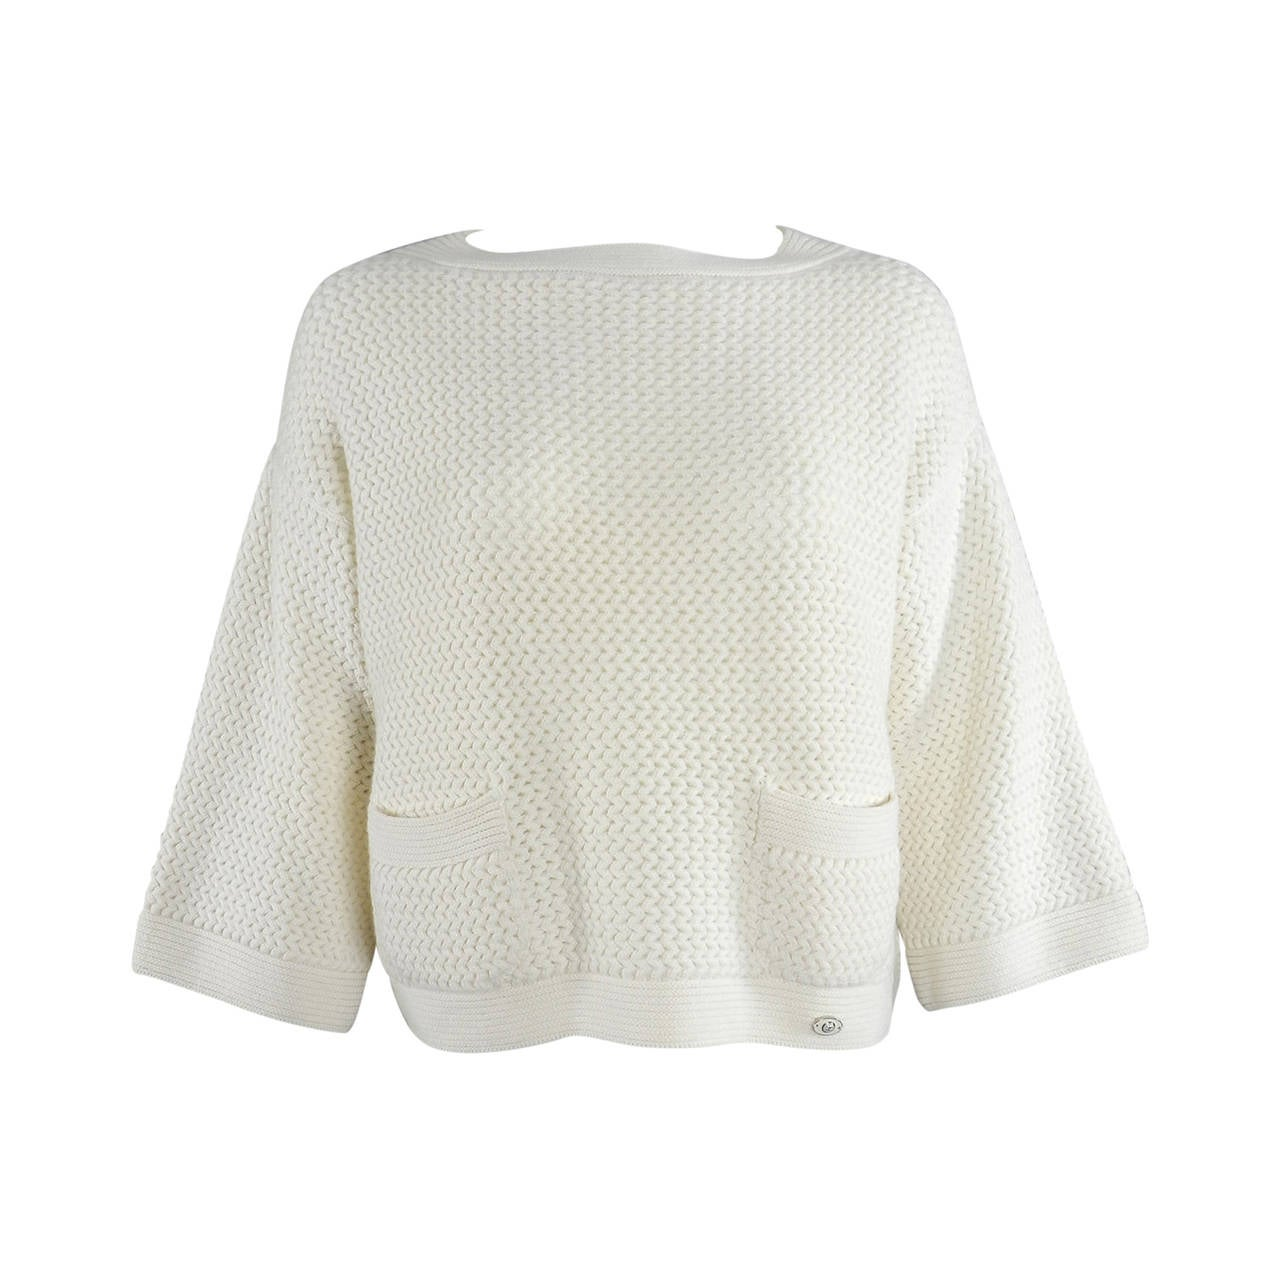 Chanel Ivory Cashmere Cropped Sweater Top 1